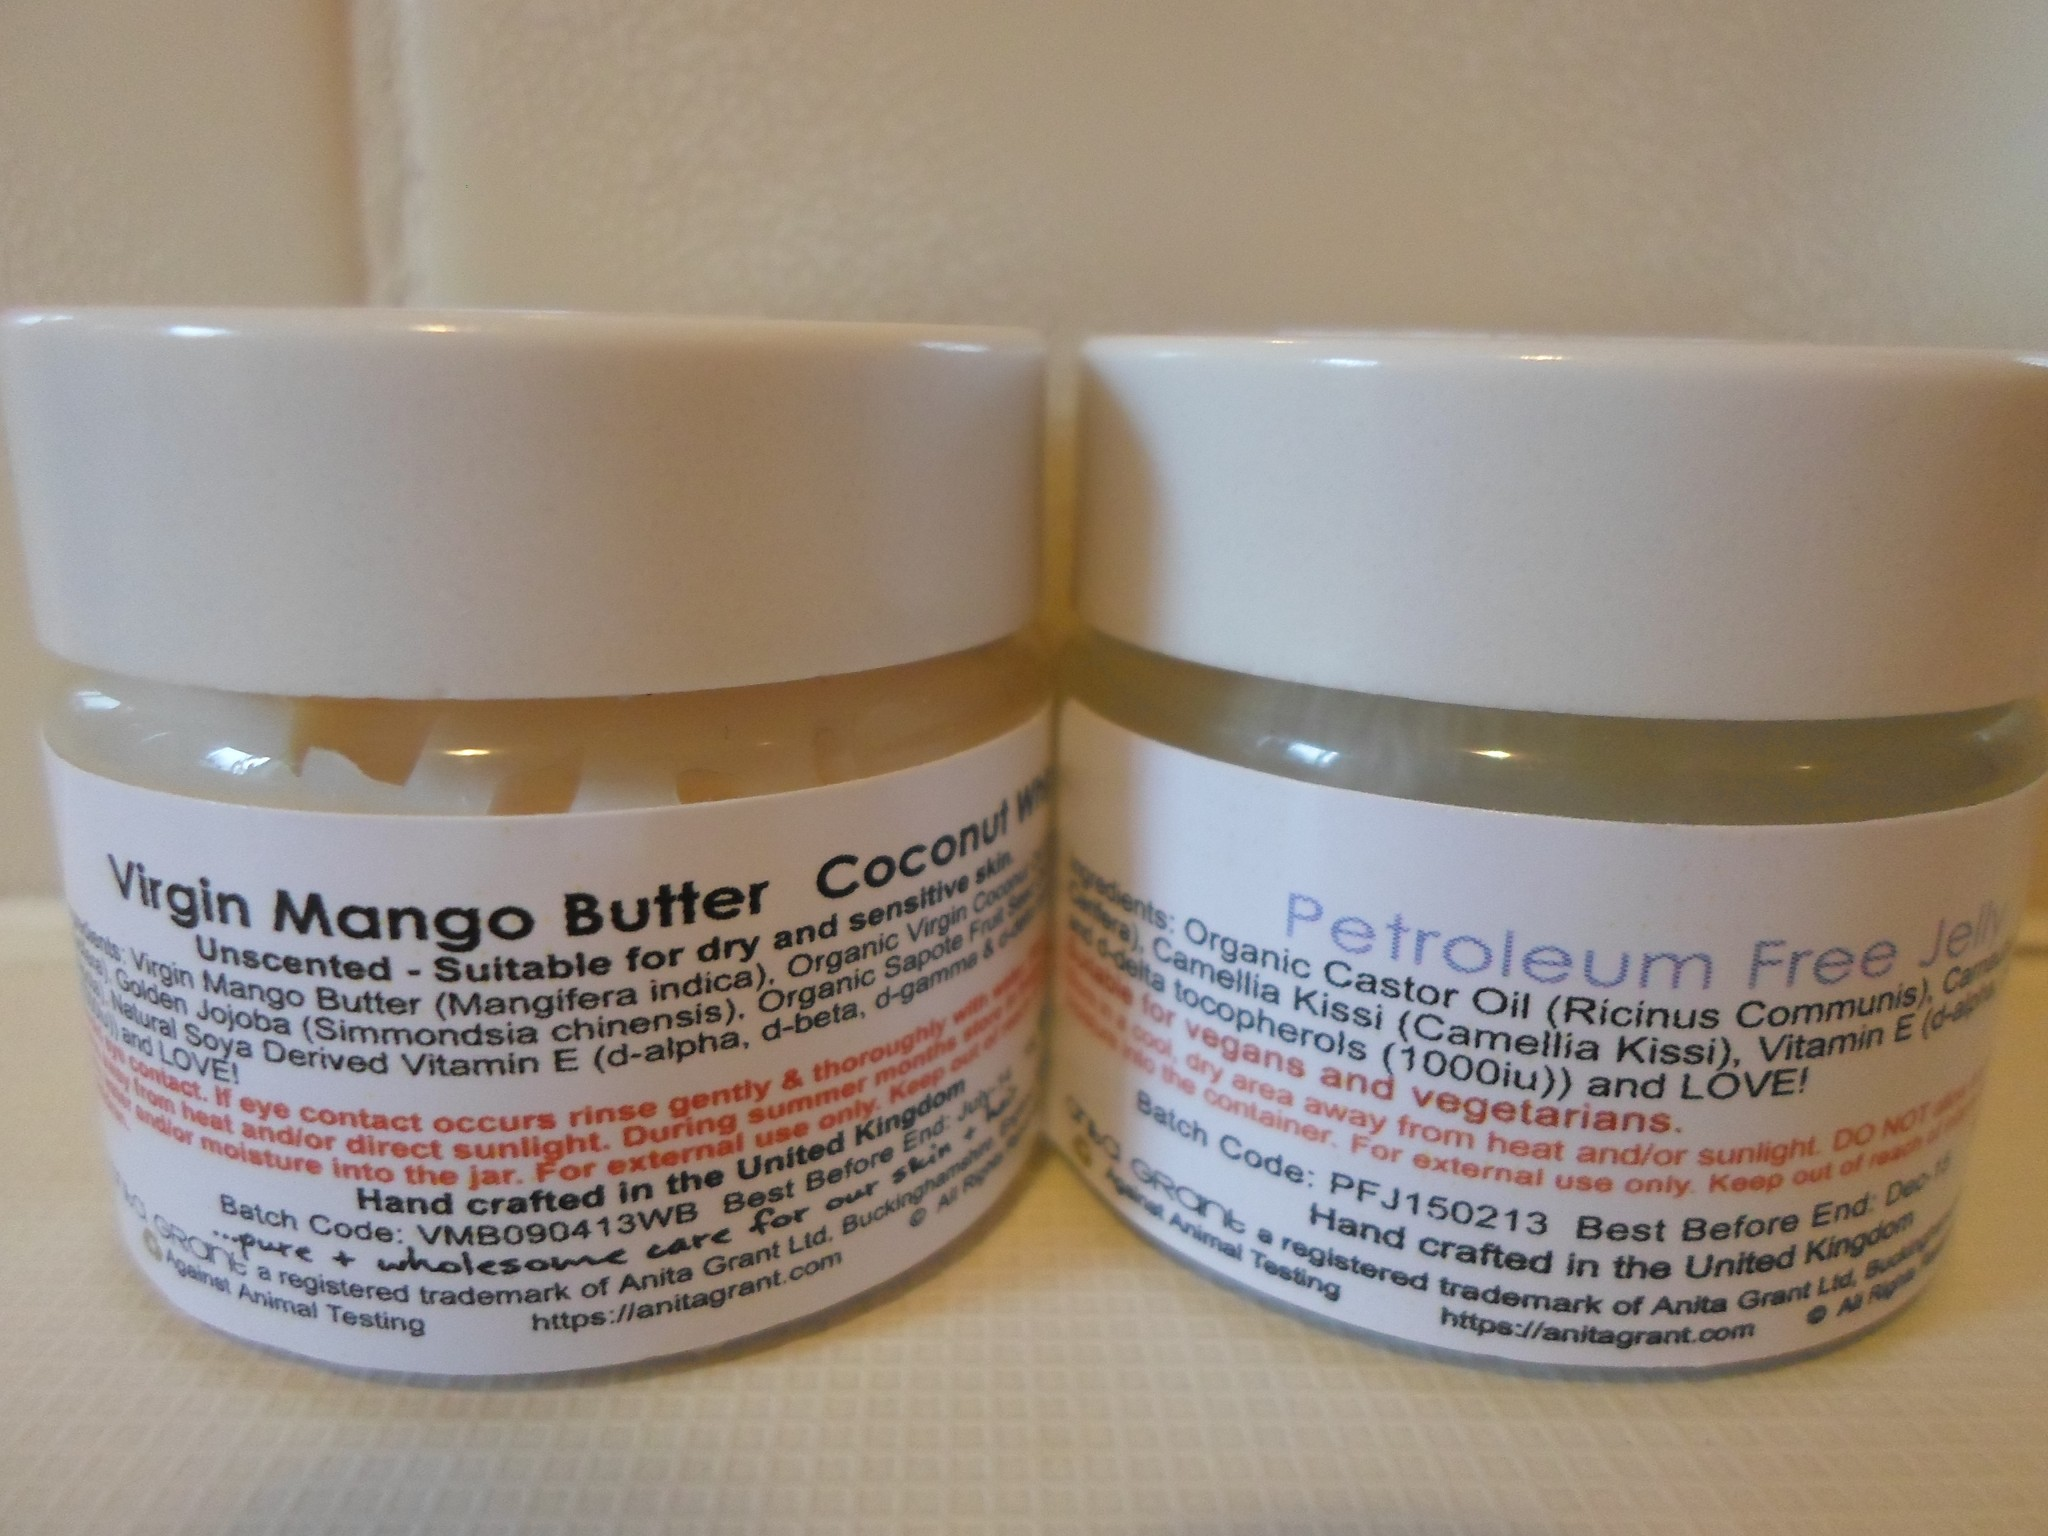 Review Anita Grant Virgin Mango Butter Coconut Whip